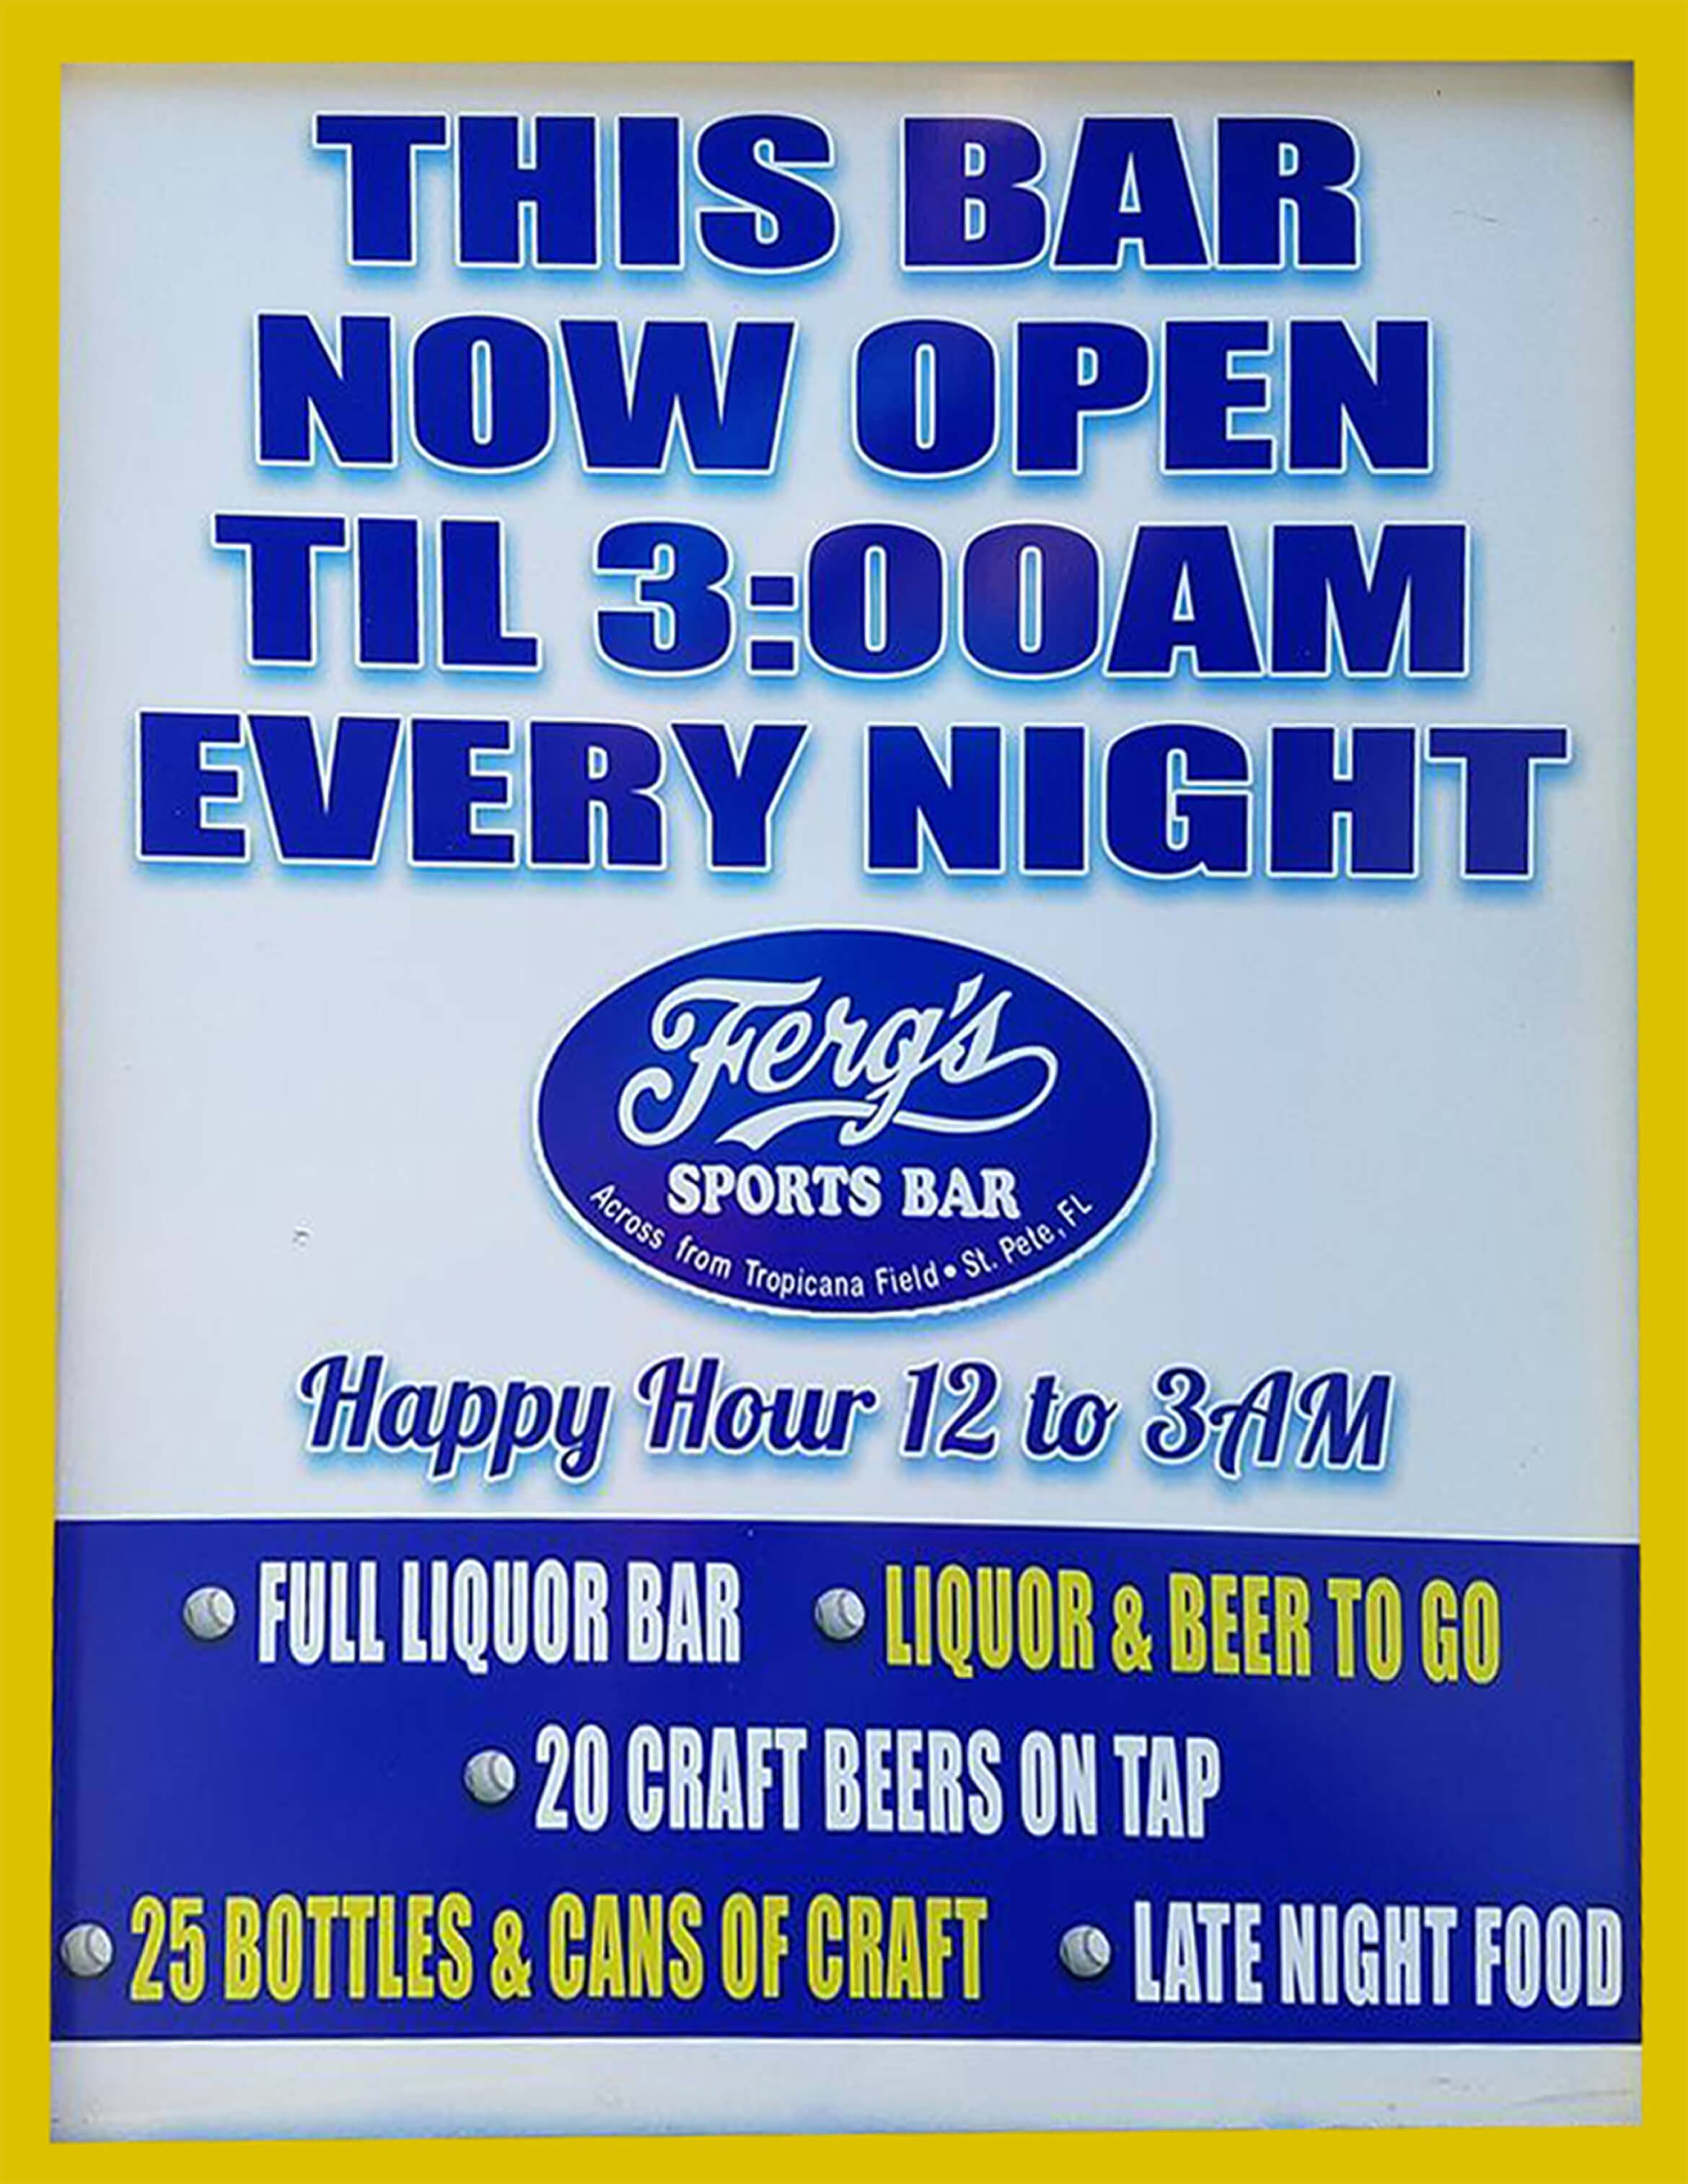 Now Open Till 3AM!